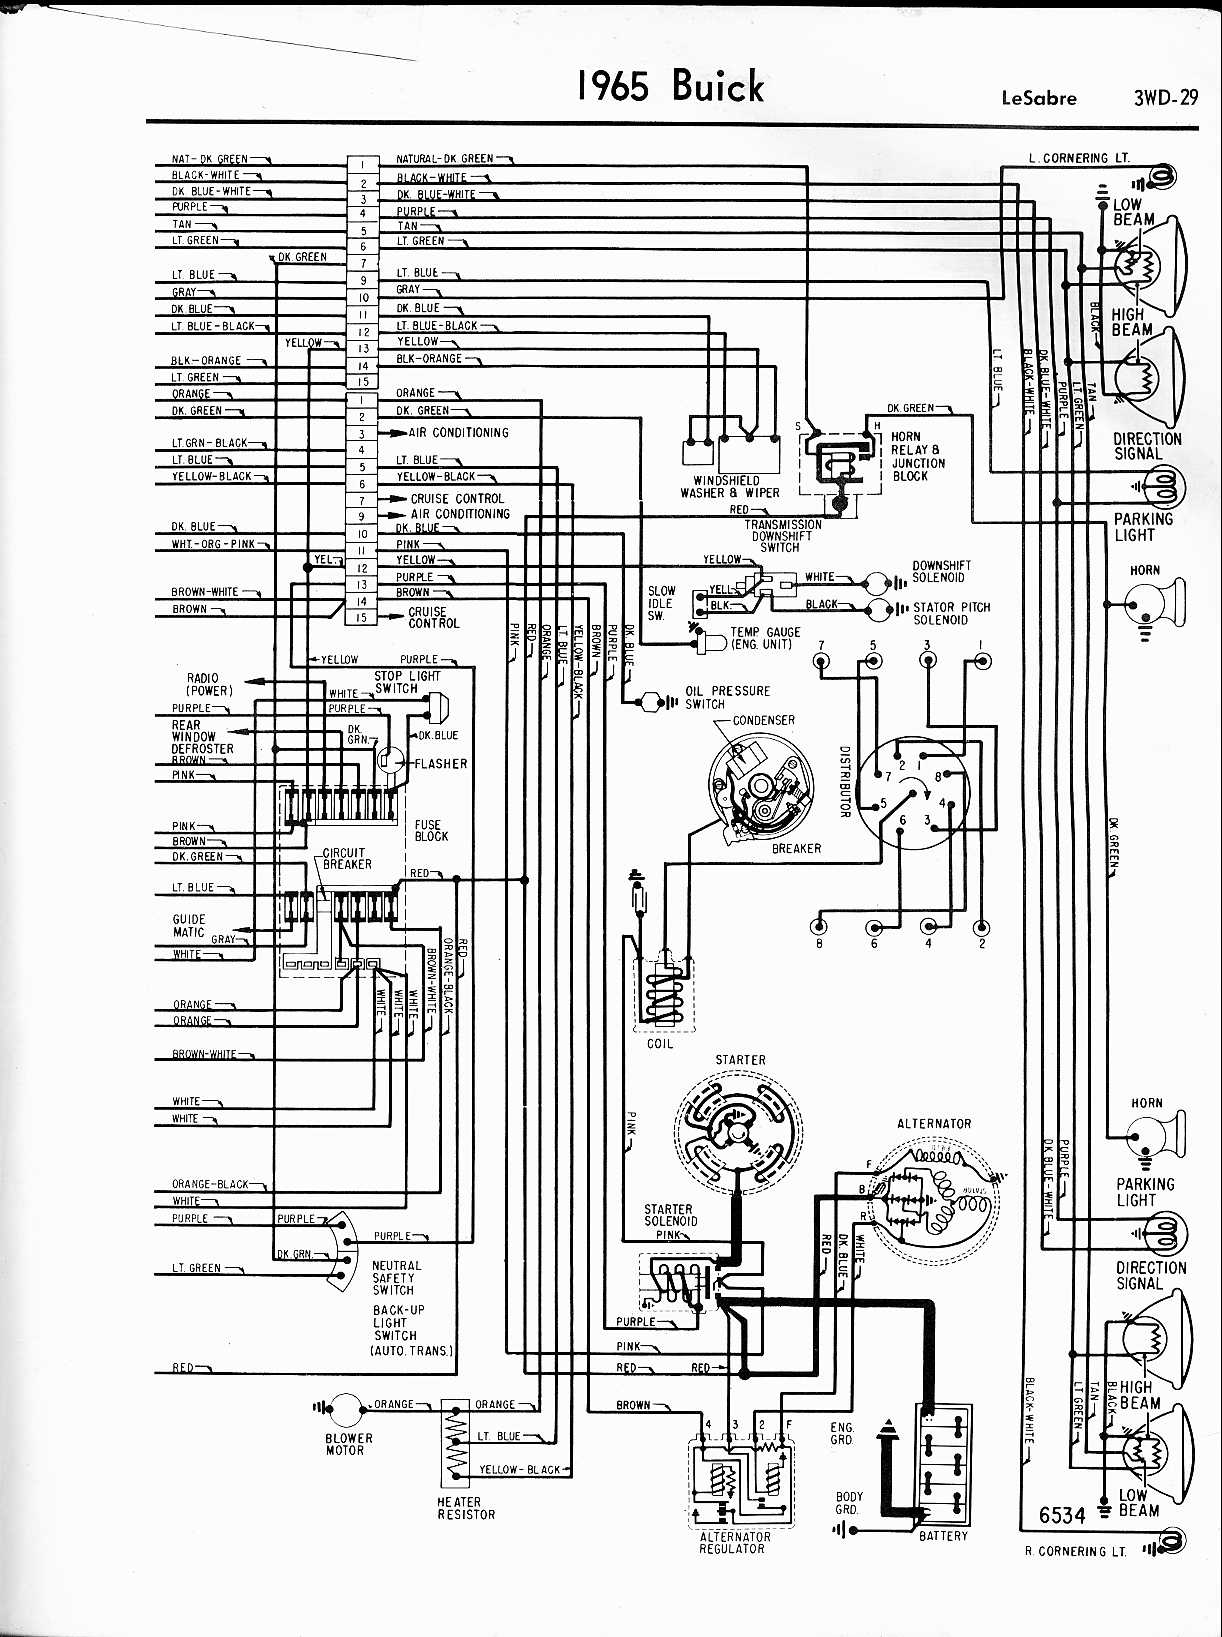 MWireBuic65_3WD 029 buick wiring diagrams 1957 1965 Basic Turn Signal Wiring Diagram at crackthecode.co